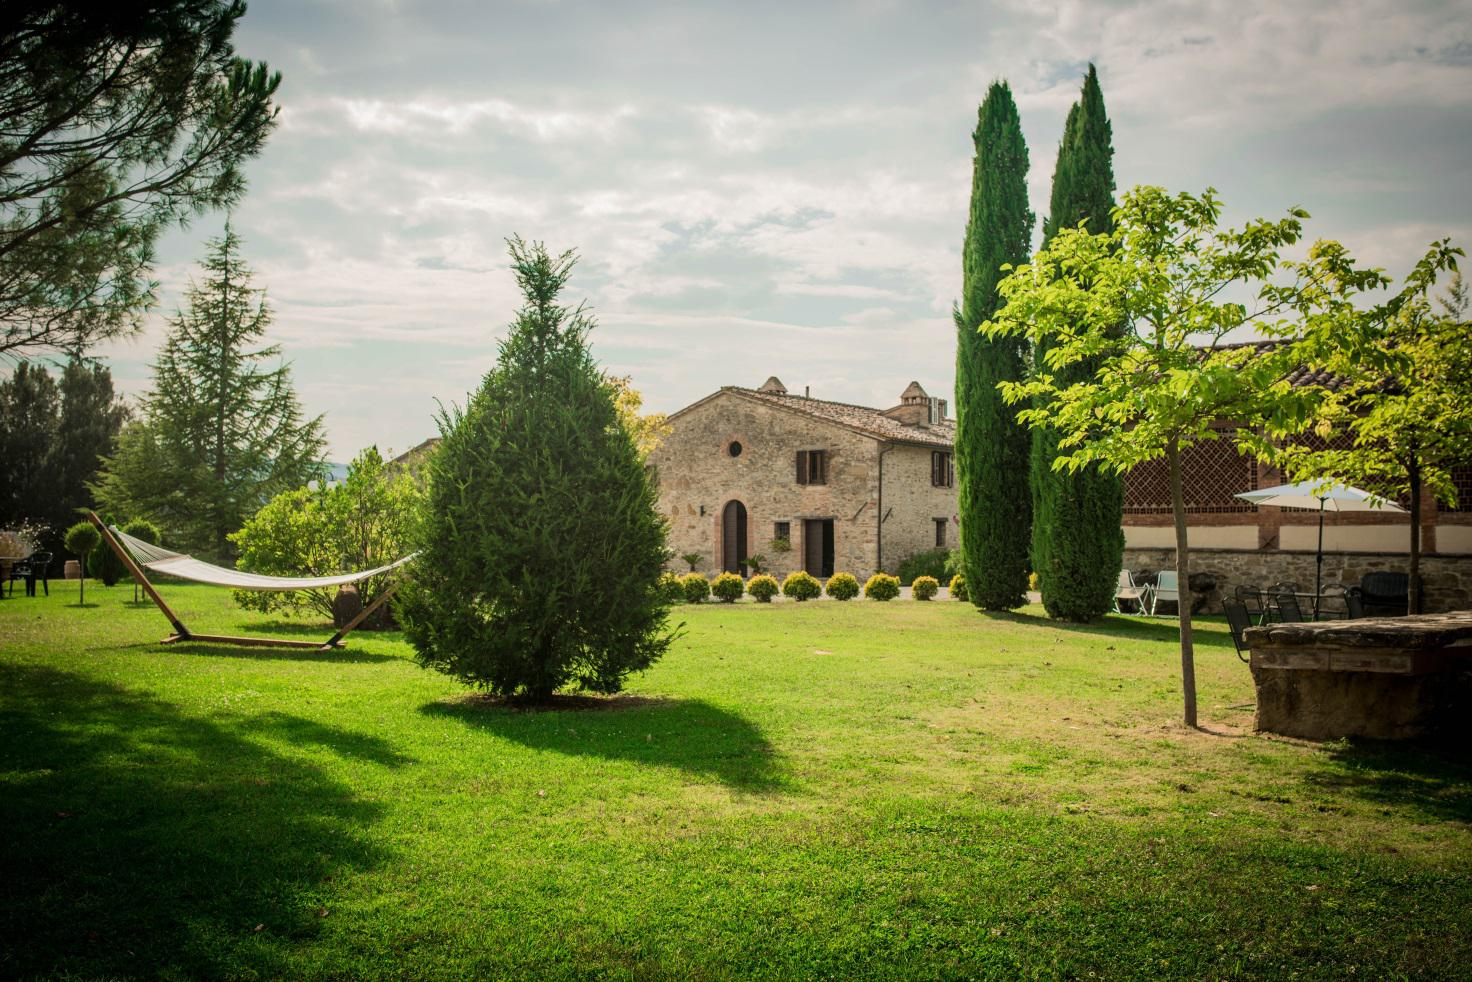 GUESTS UP TO 33 The estate is surrounded by the idyllic landscape of the picturesque hills of Umbria